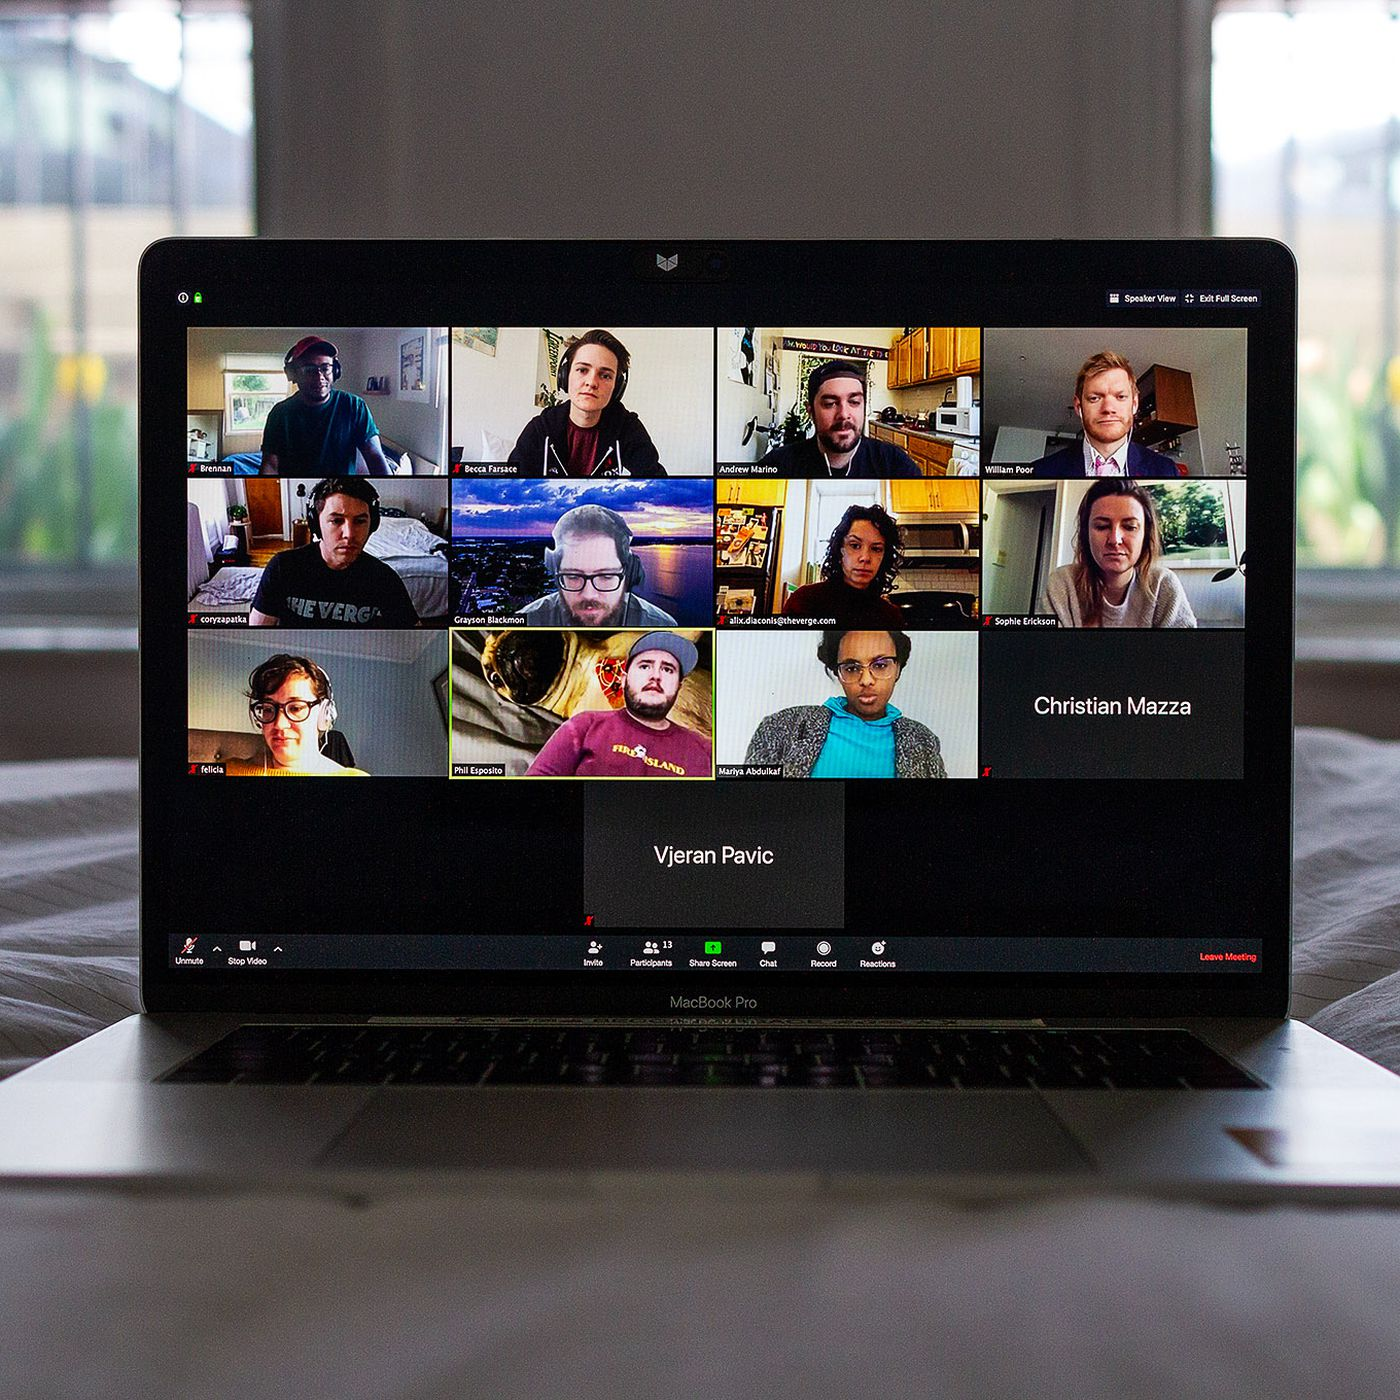 How To Record Video Meetings On Zoom Google Meet And Skype The Verge